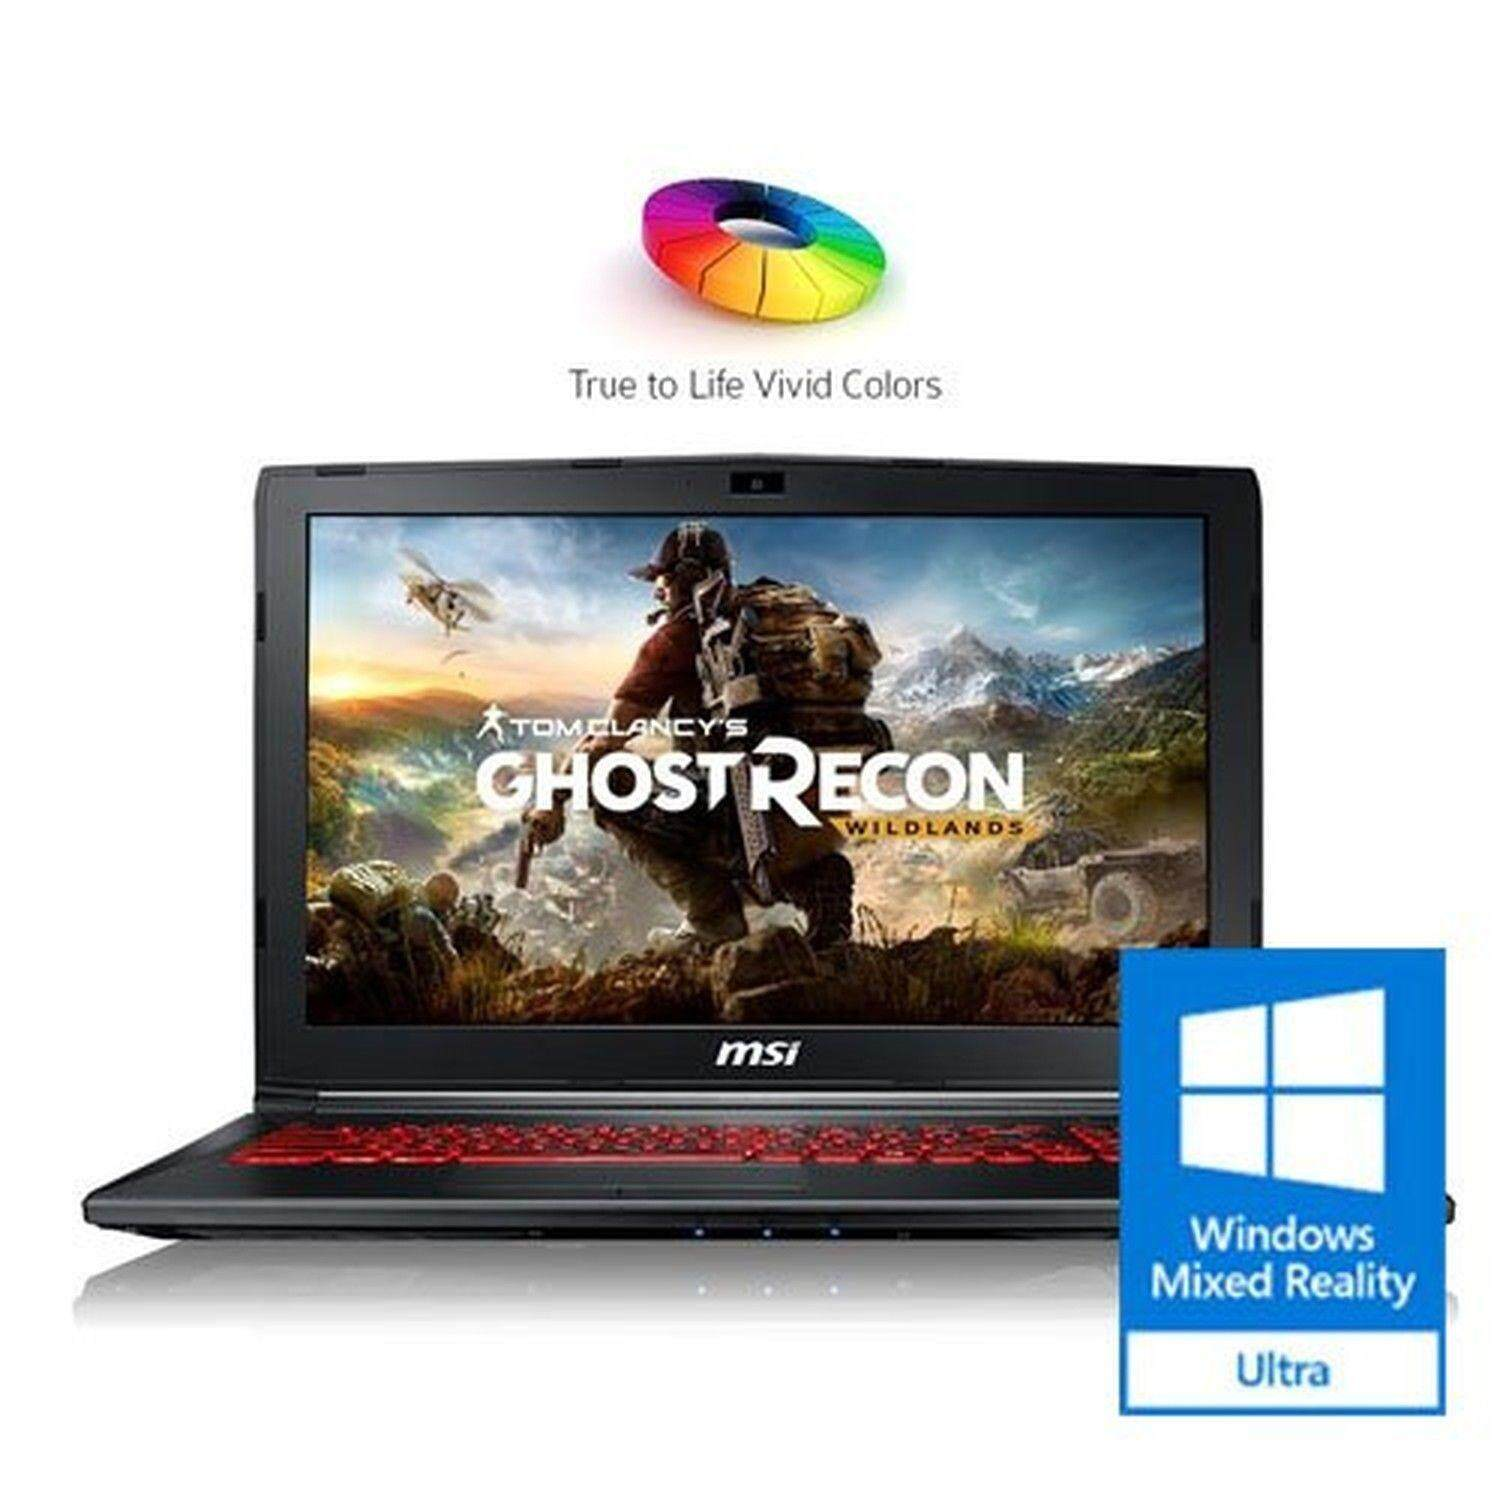 MSI GL62M 7REX-1896US 15.6 Full HD Thin and Light Gaming Laptop Computer Quad Core i7-7700HQ, GeForce GTX 1050Ti 4G Graphics, 8GB DRAM, 128GB SSD + 1TB Hard Drive, Steelseries Red Backlit Keyboard Malaysia